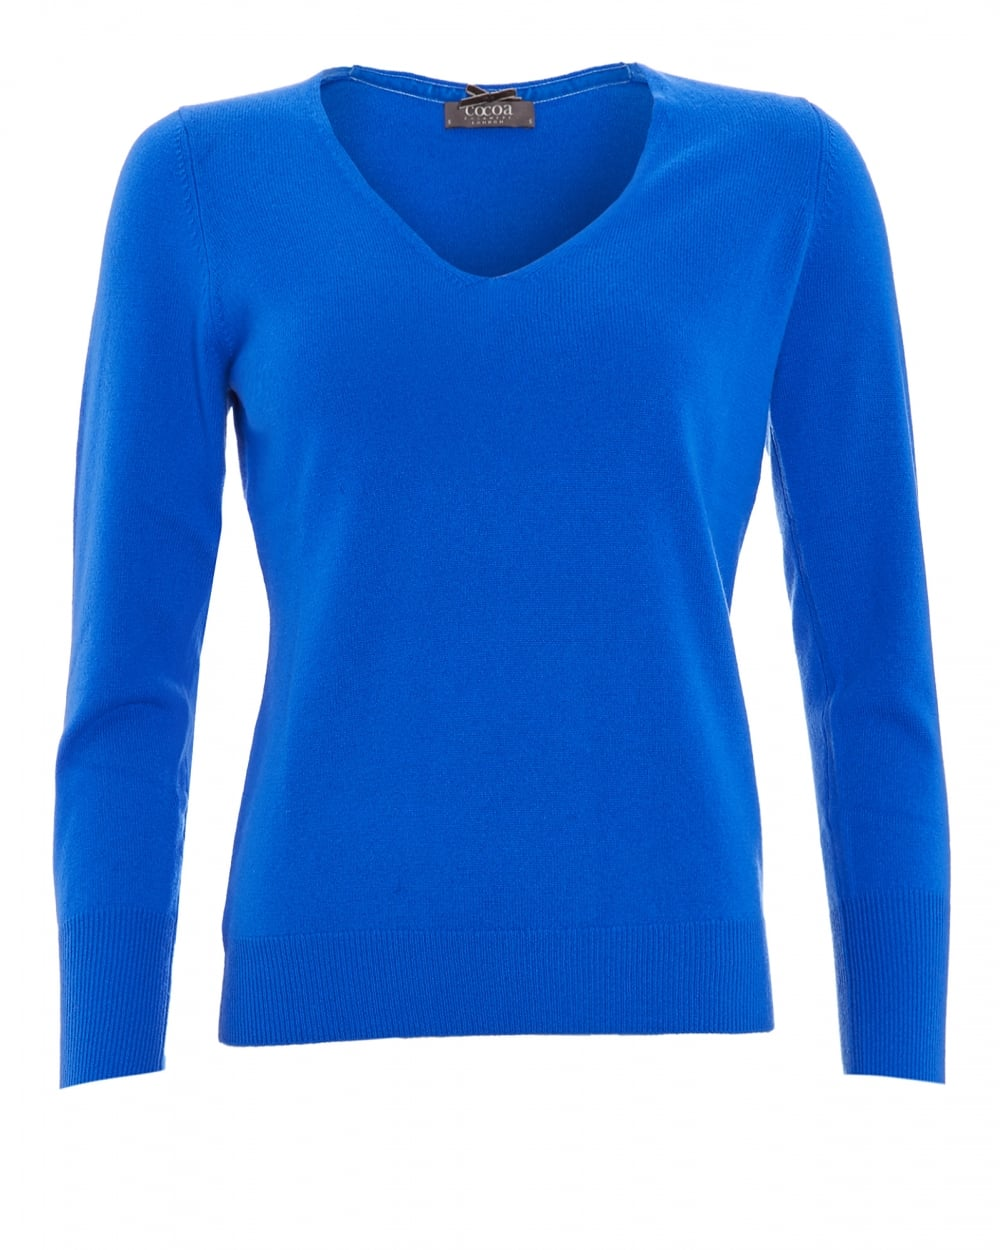 Cocoa Cashmere Womens Jumper, V-Neck Button Cuff Electric Blue Sweater